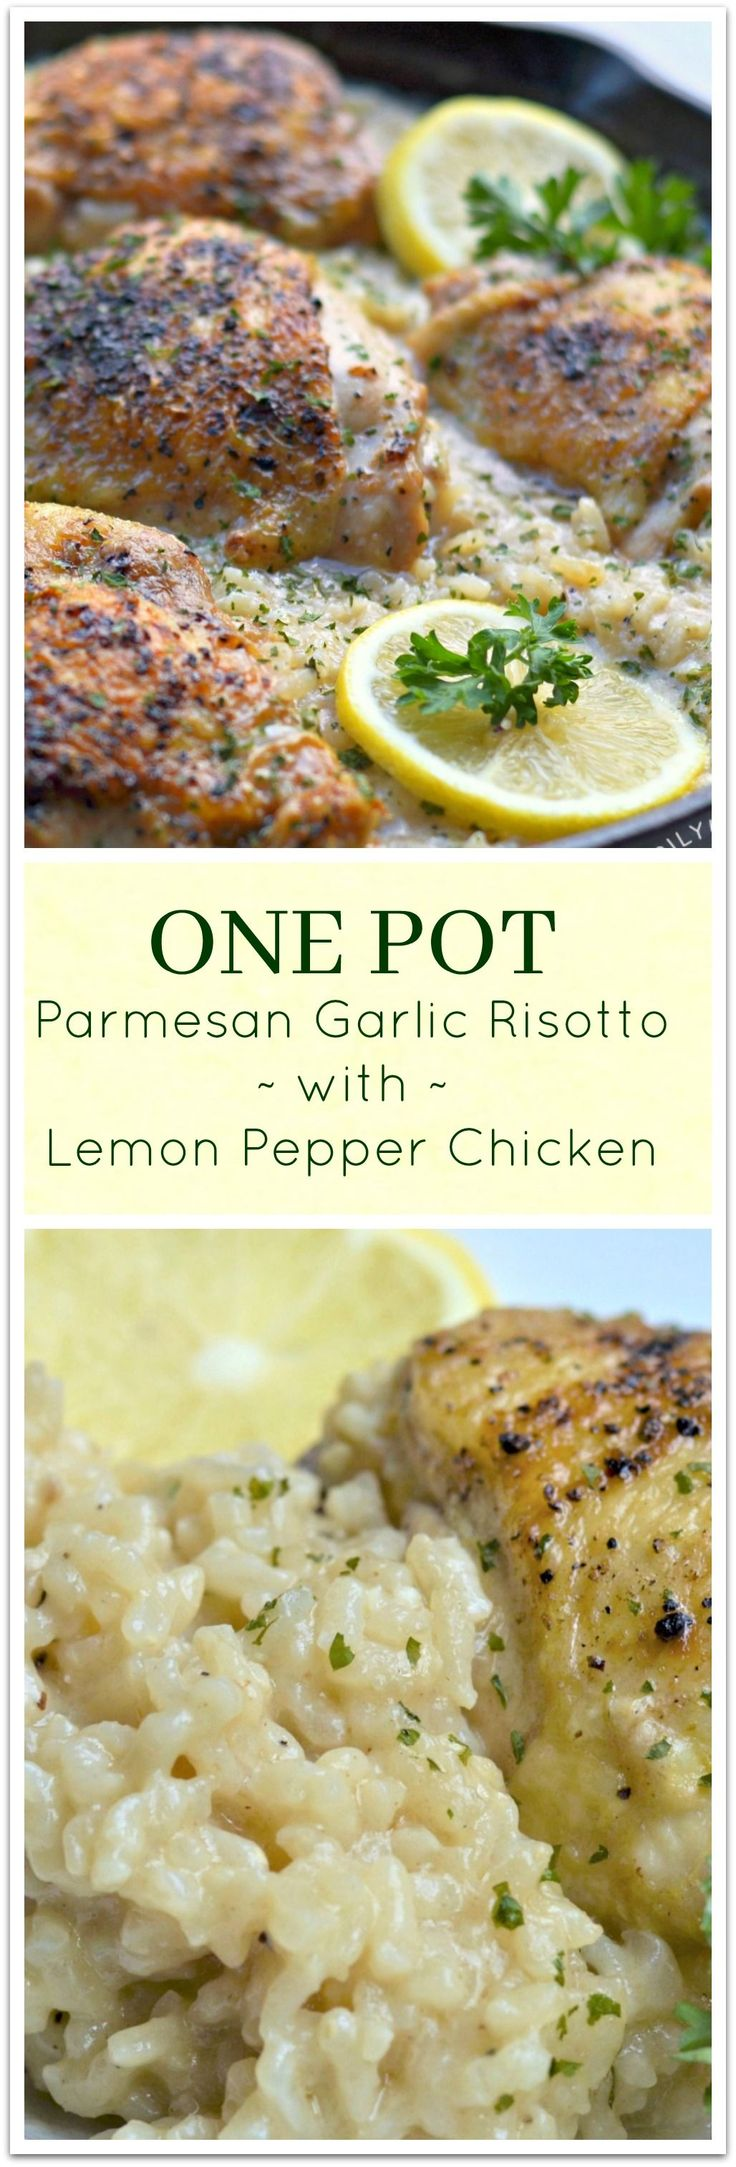 Oven Roasted Lemon Pepper Chicken on a bed of Creamy Garlic Parmesan Risotto - one pot, baked in the oven! #happilyunprocessed #chicken #risotto #cleaneating